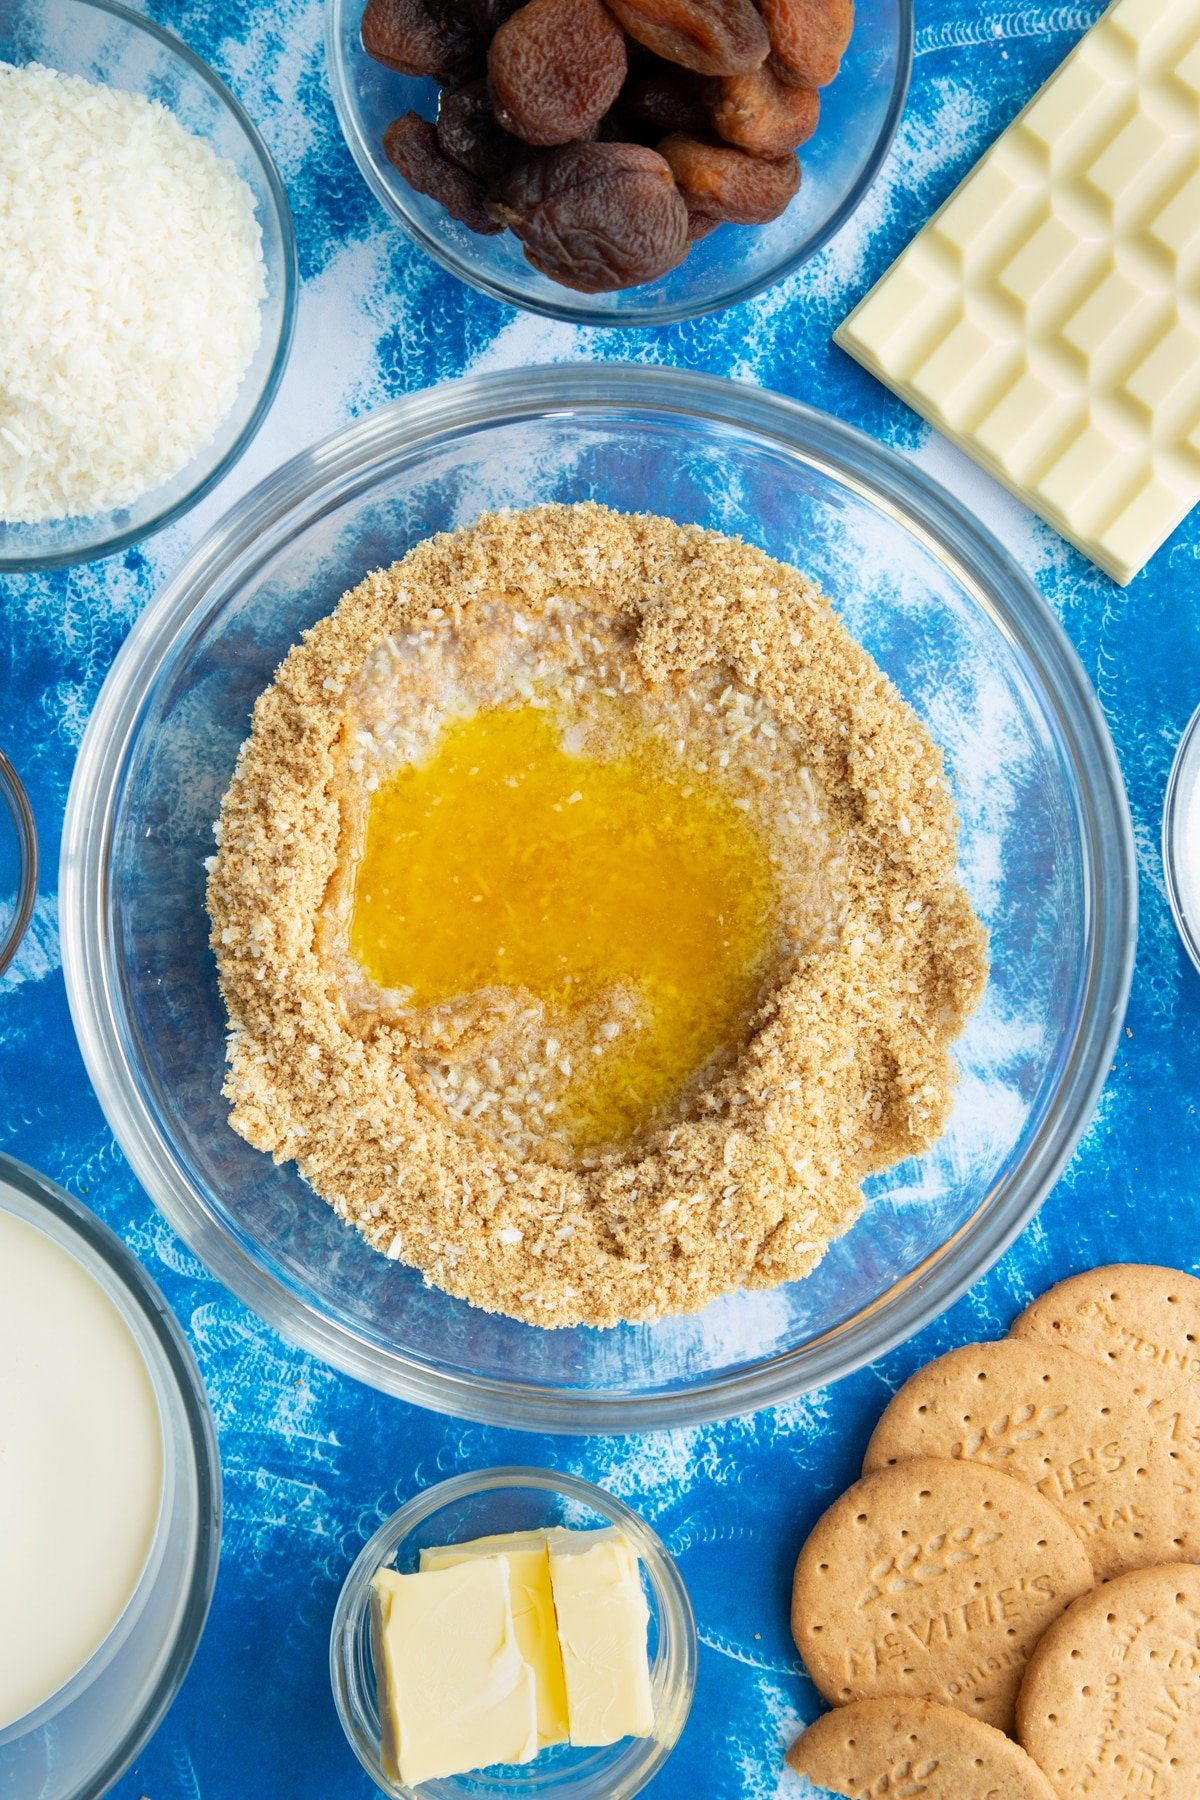 Crushed biscuits and desiccated coconut mixed together with melted butter on top in a bowl. Ingredients to make an apricot cheesecake surround the bowl.